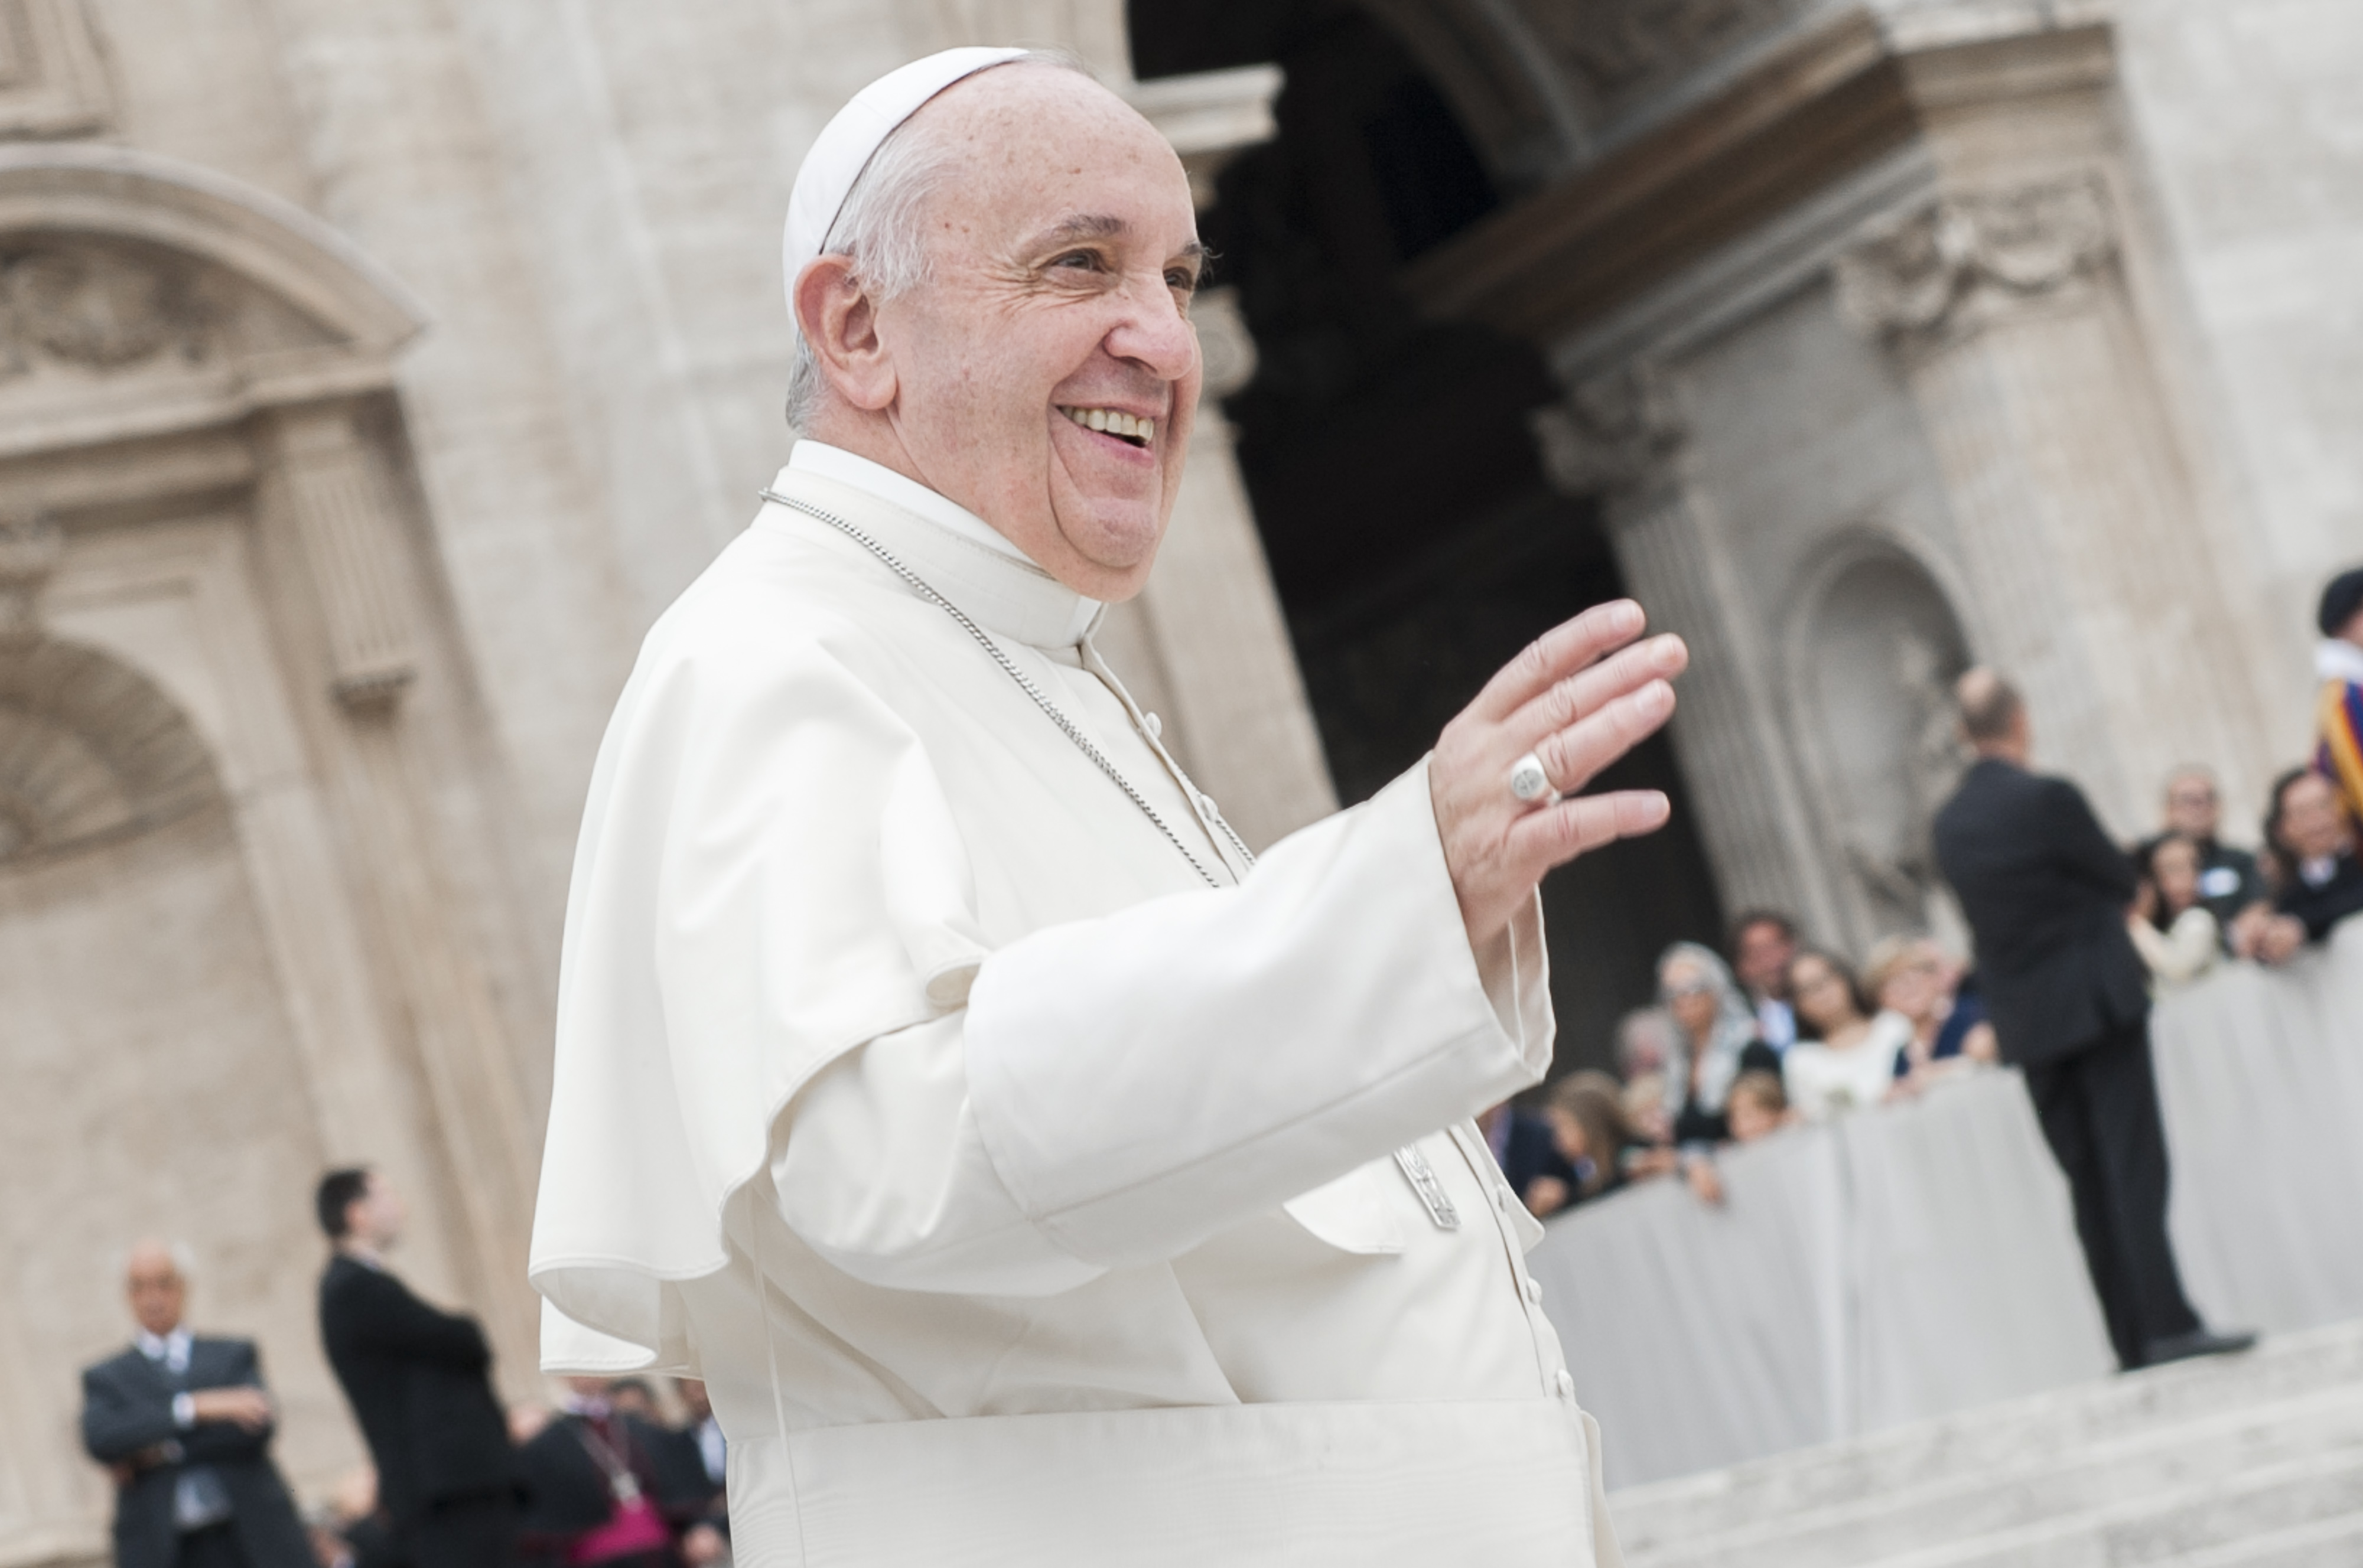 Pope Francis attends his weekly audience in Saint Peter's square at the Vatican on Sept. 2, 2015.